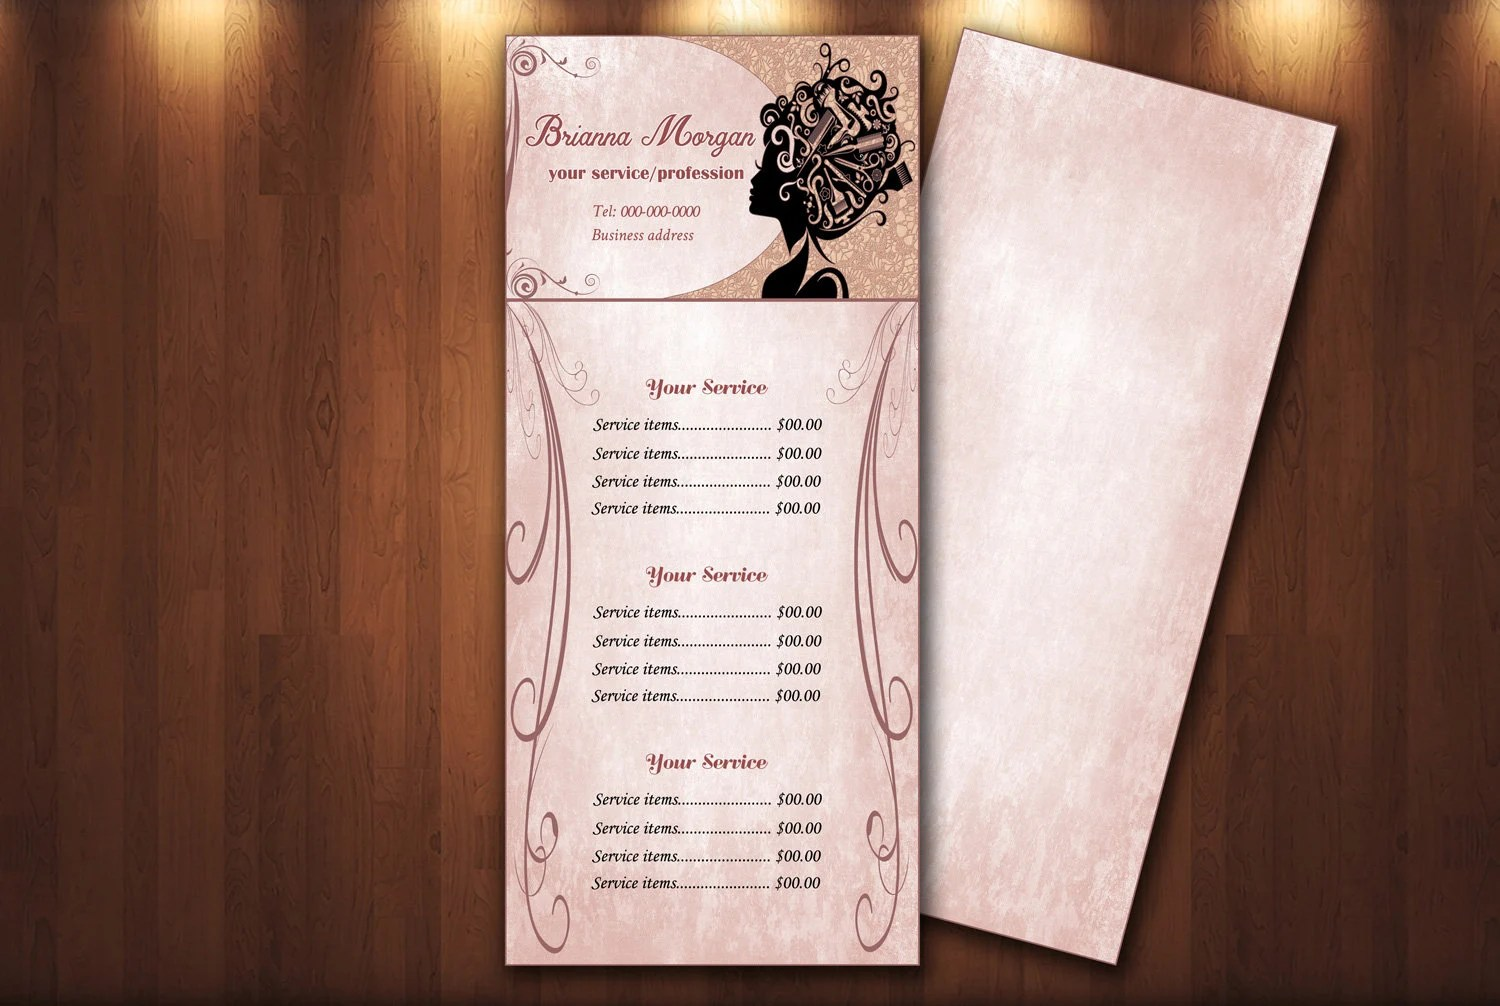 Beauty Salon Prices Beauty Salon Pricing Menu Price List Template Editable Service Price List Flyer Beauty Marketing Hair Salon Sign Digital Download